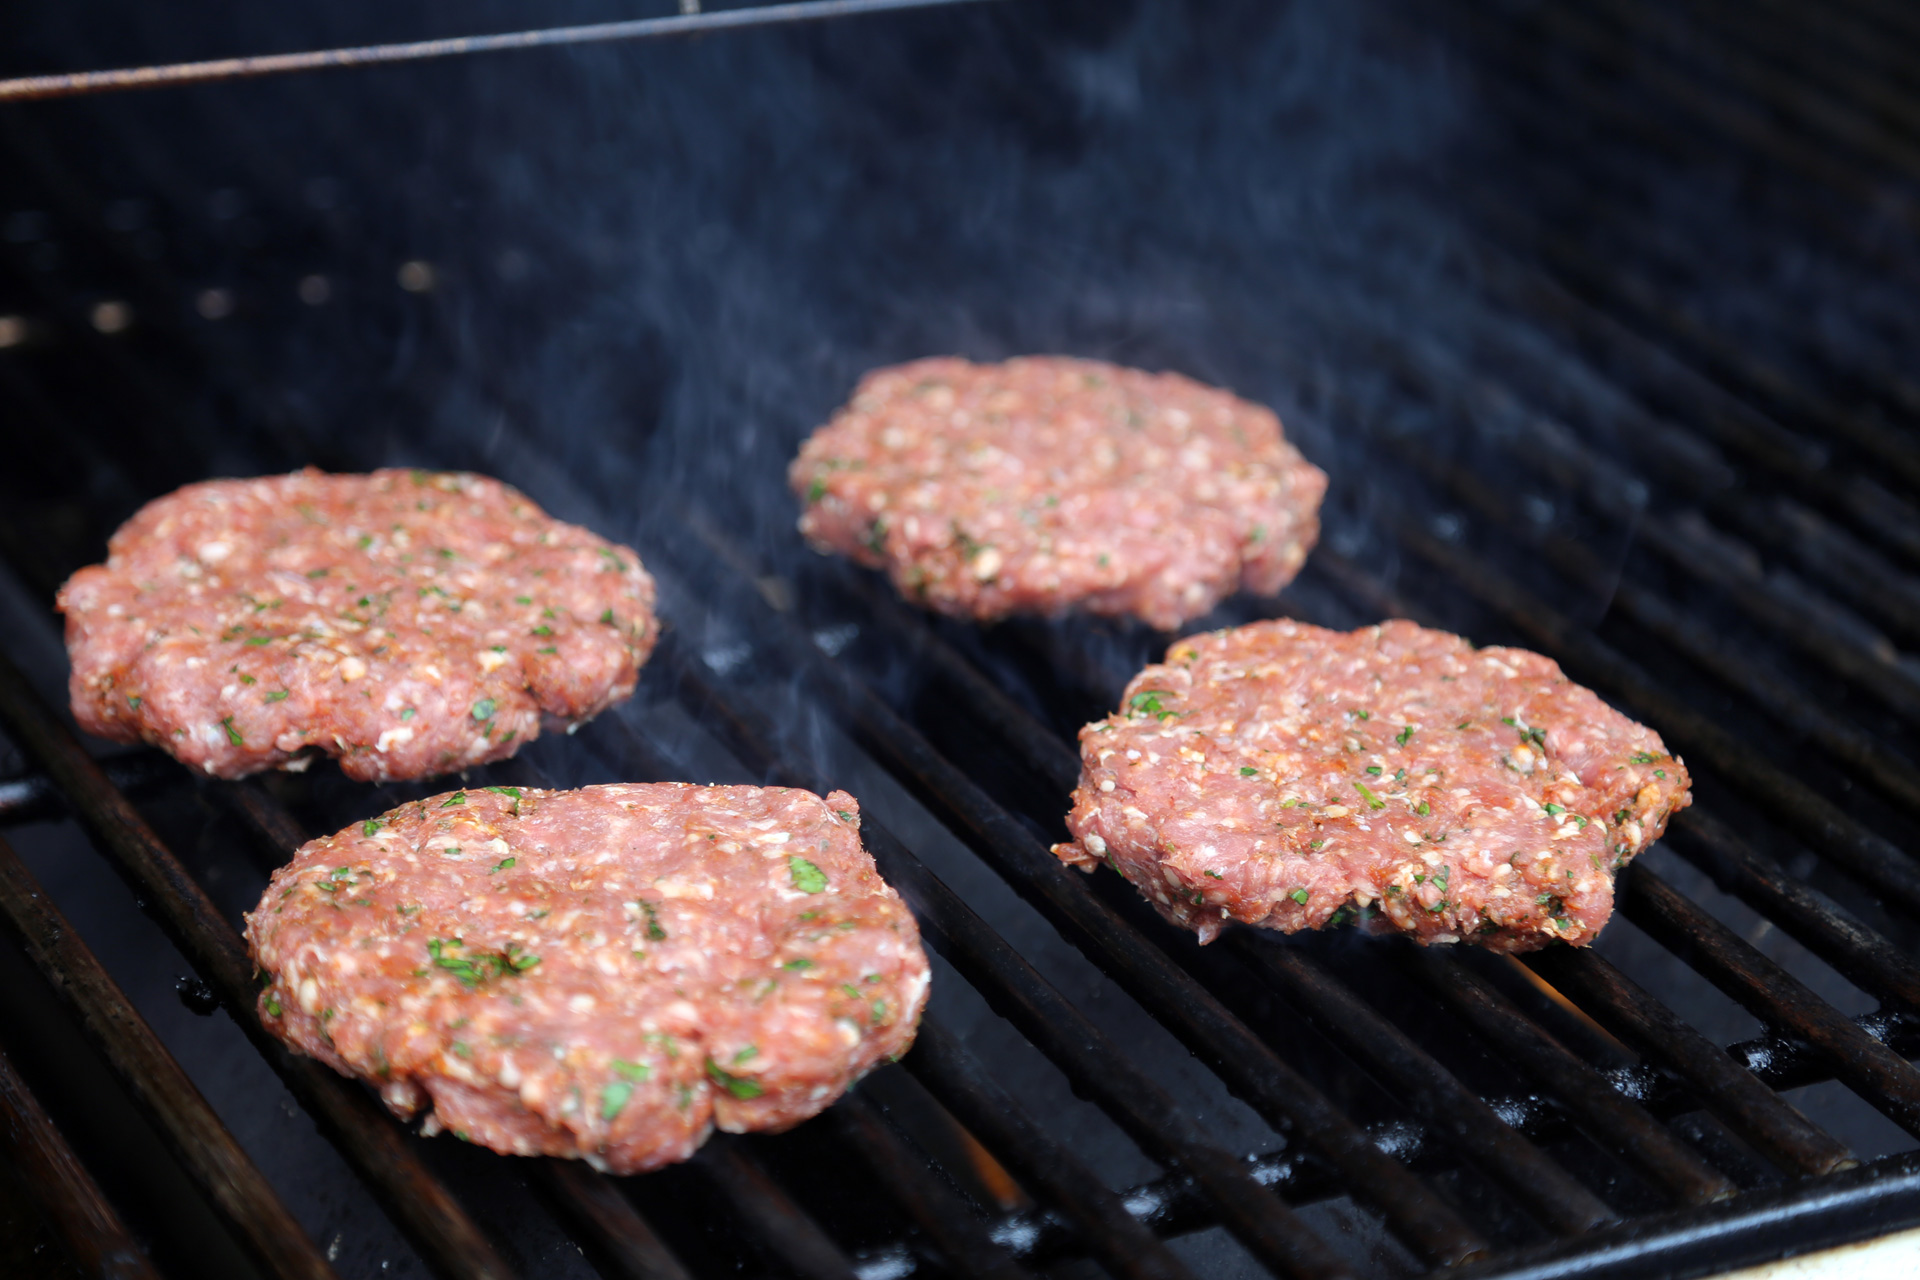 Grill the patties over the fire.